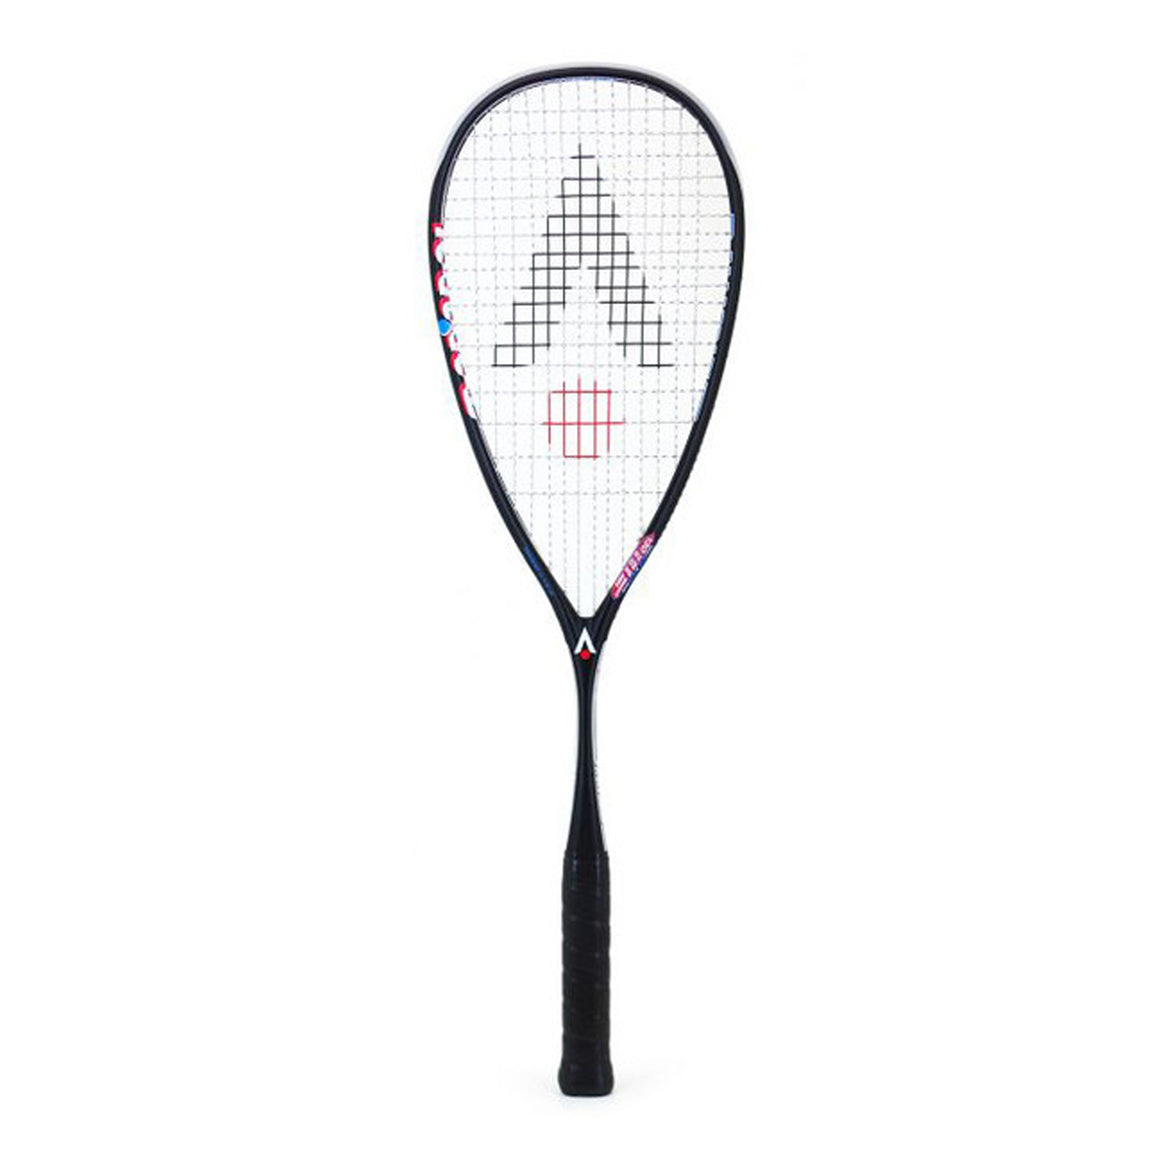 Raw 130 Squash Racket in Black